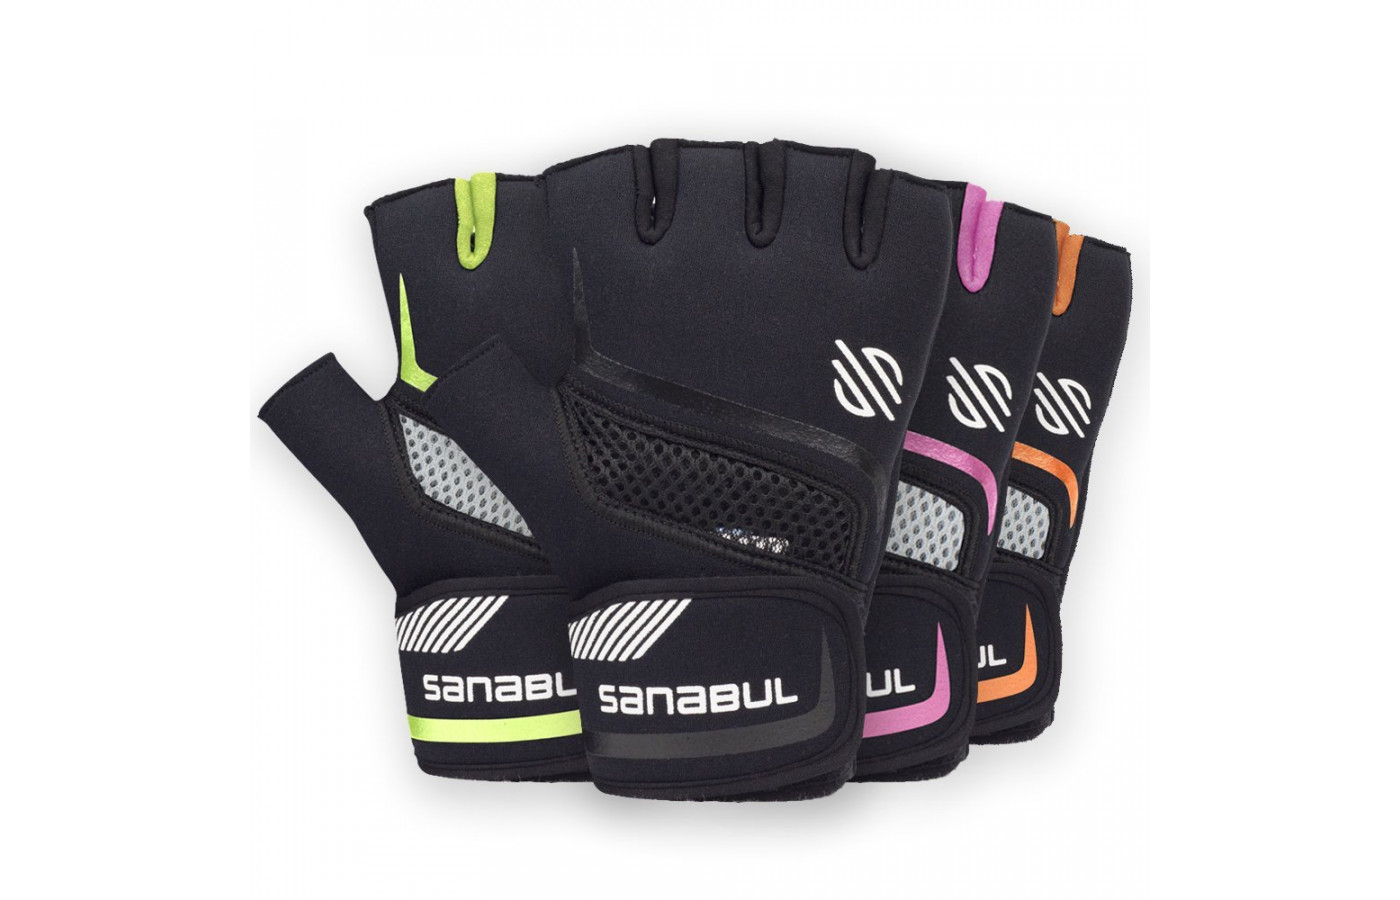 sanabul paw all colors